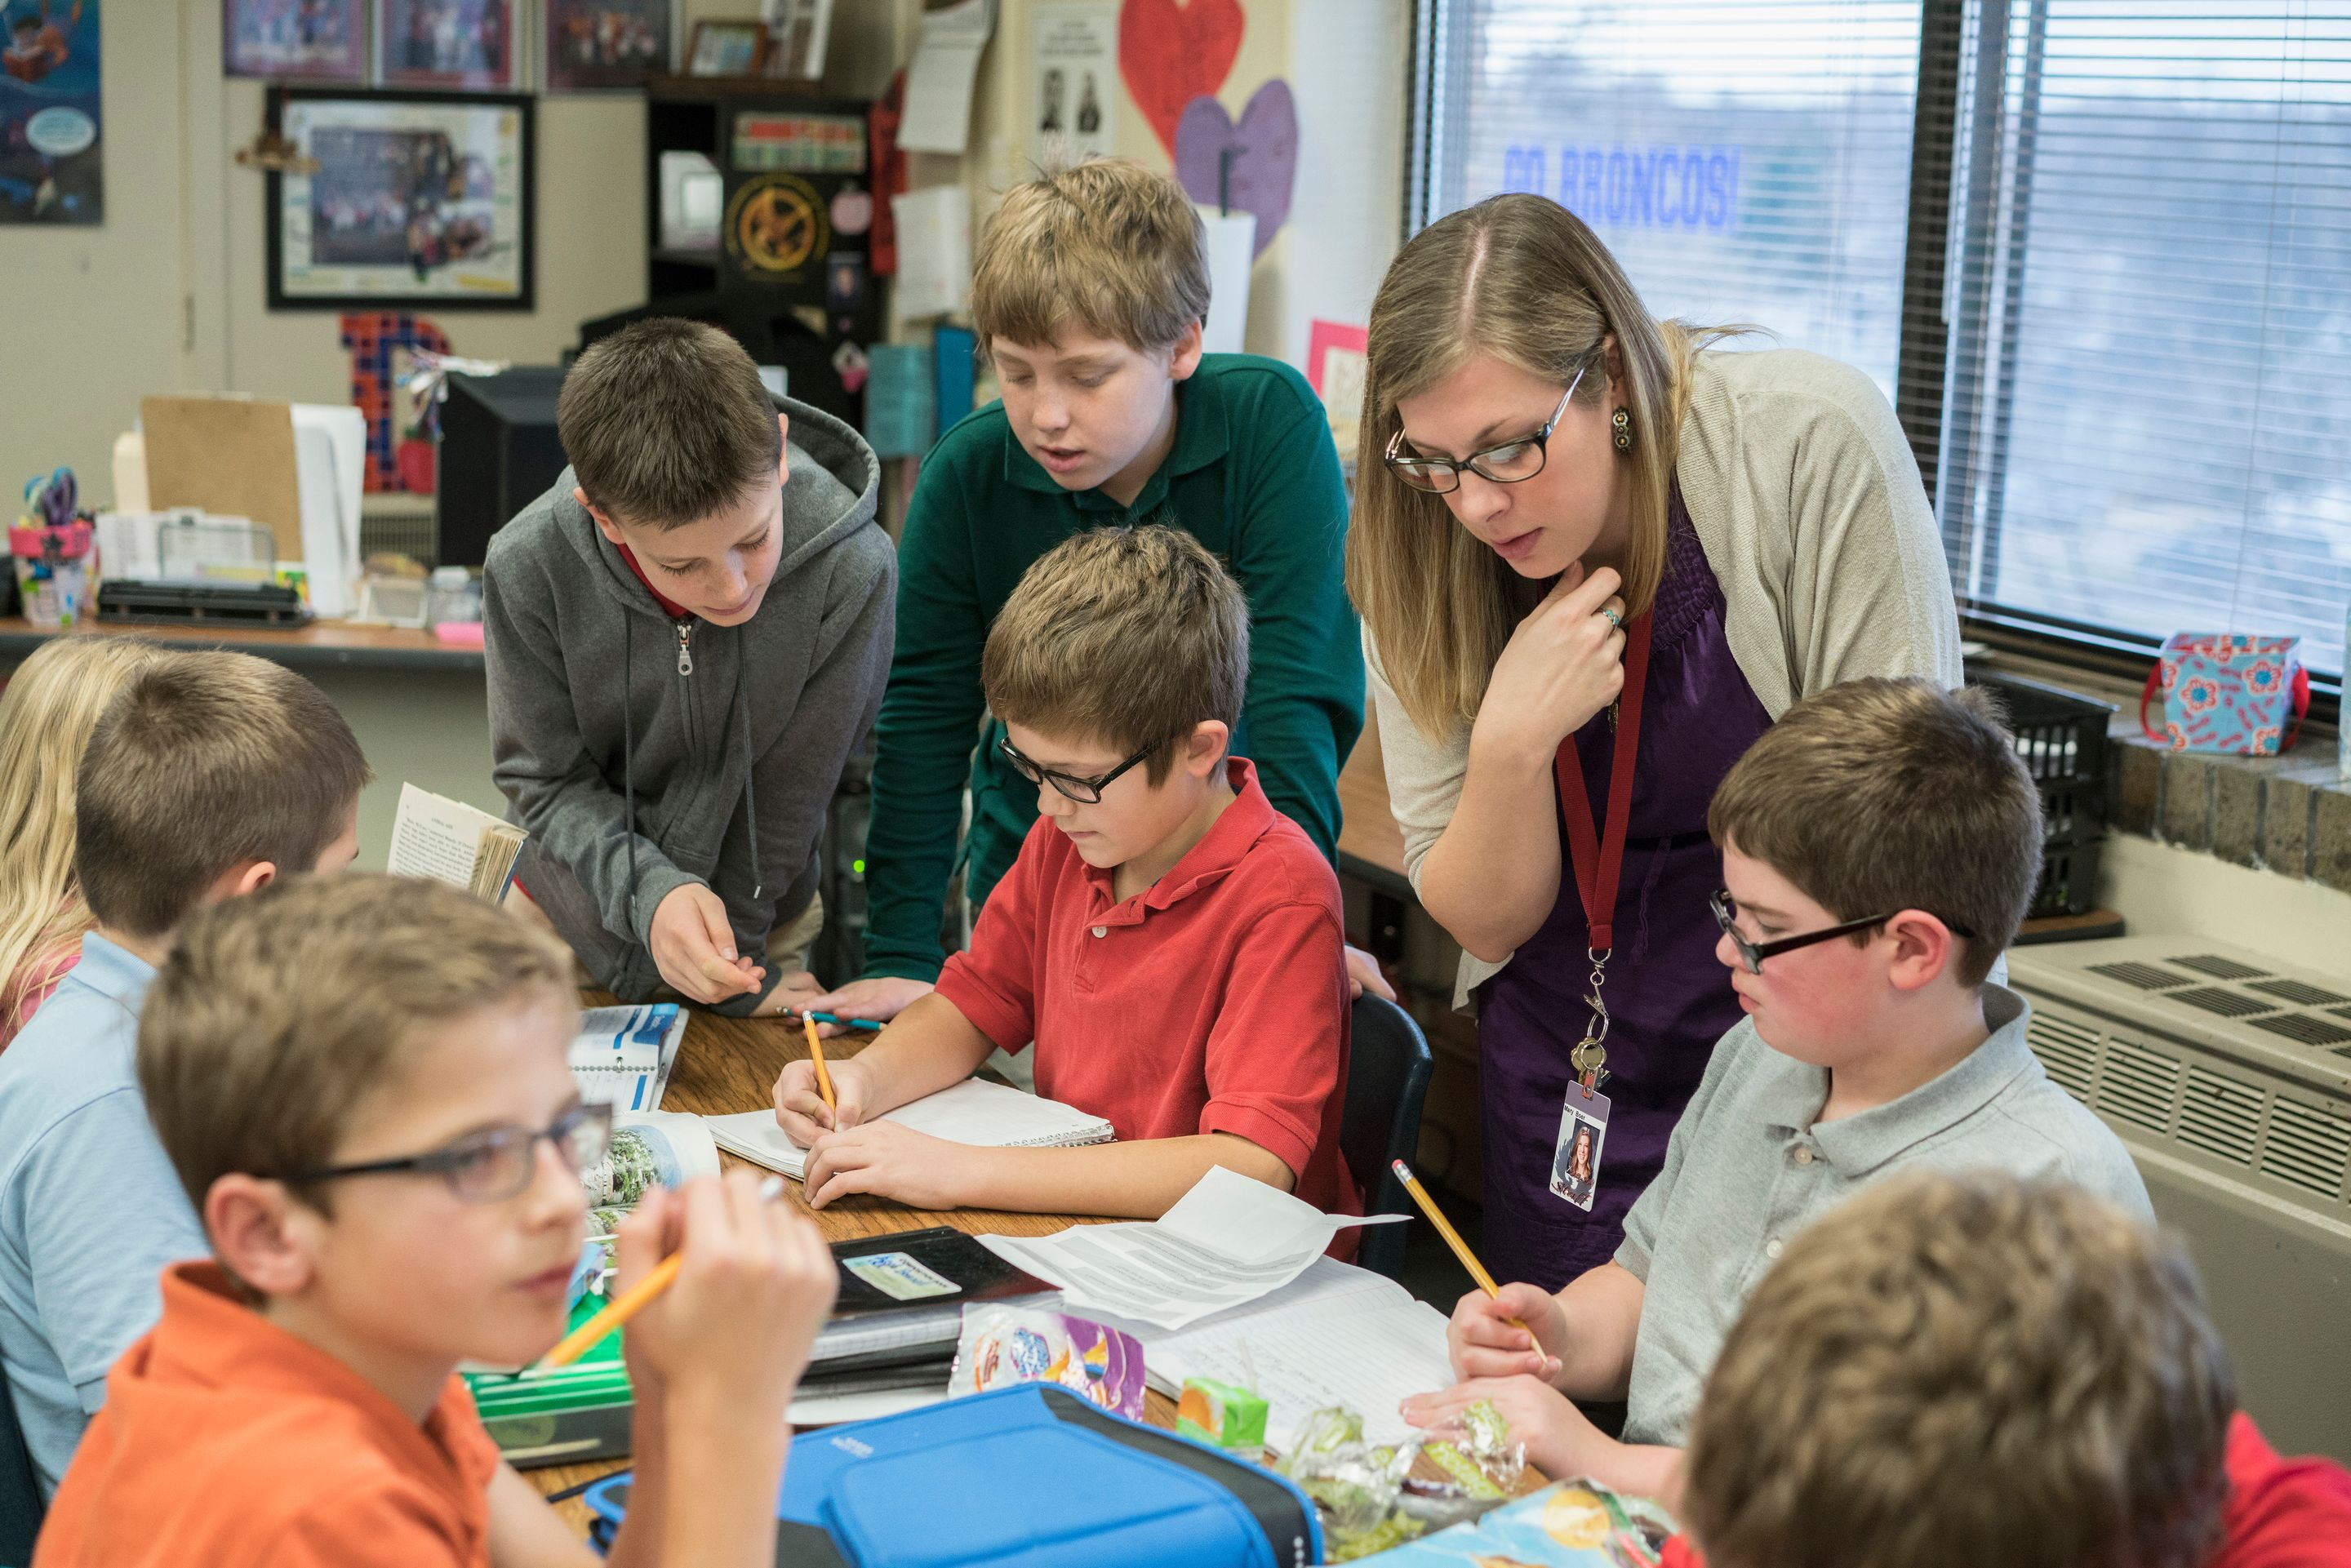 Teacher helping a group of elementary students in the classroom.